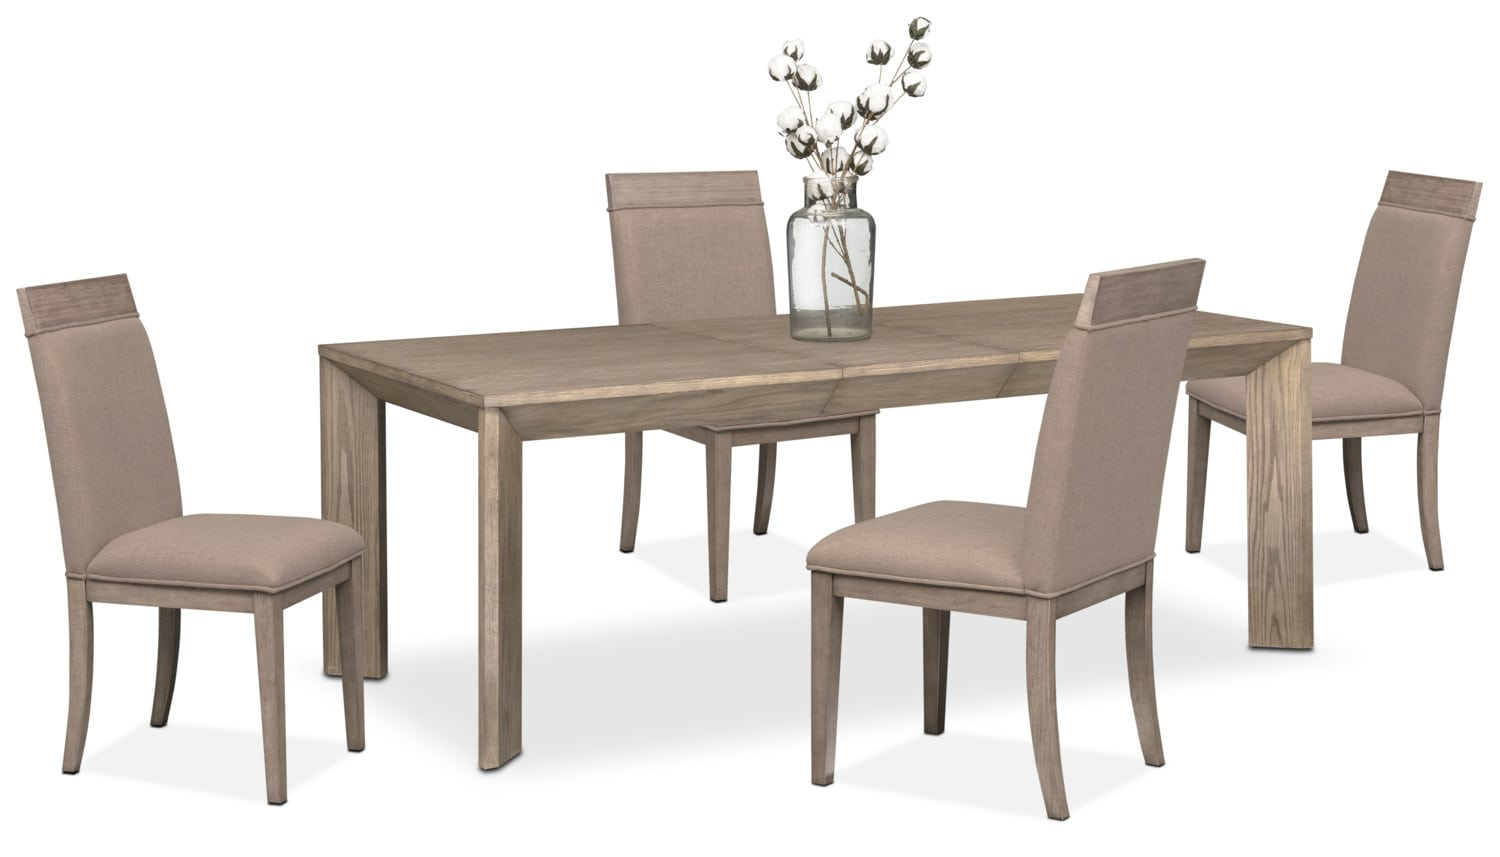 Dining Room Furniture   Gavin Table And 4 Side Chairs   Graystone